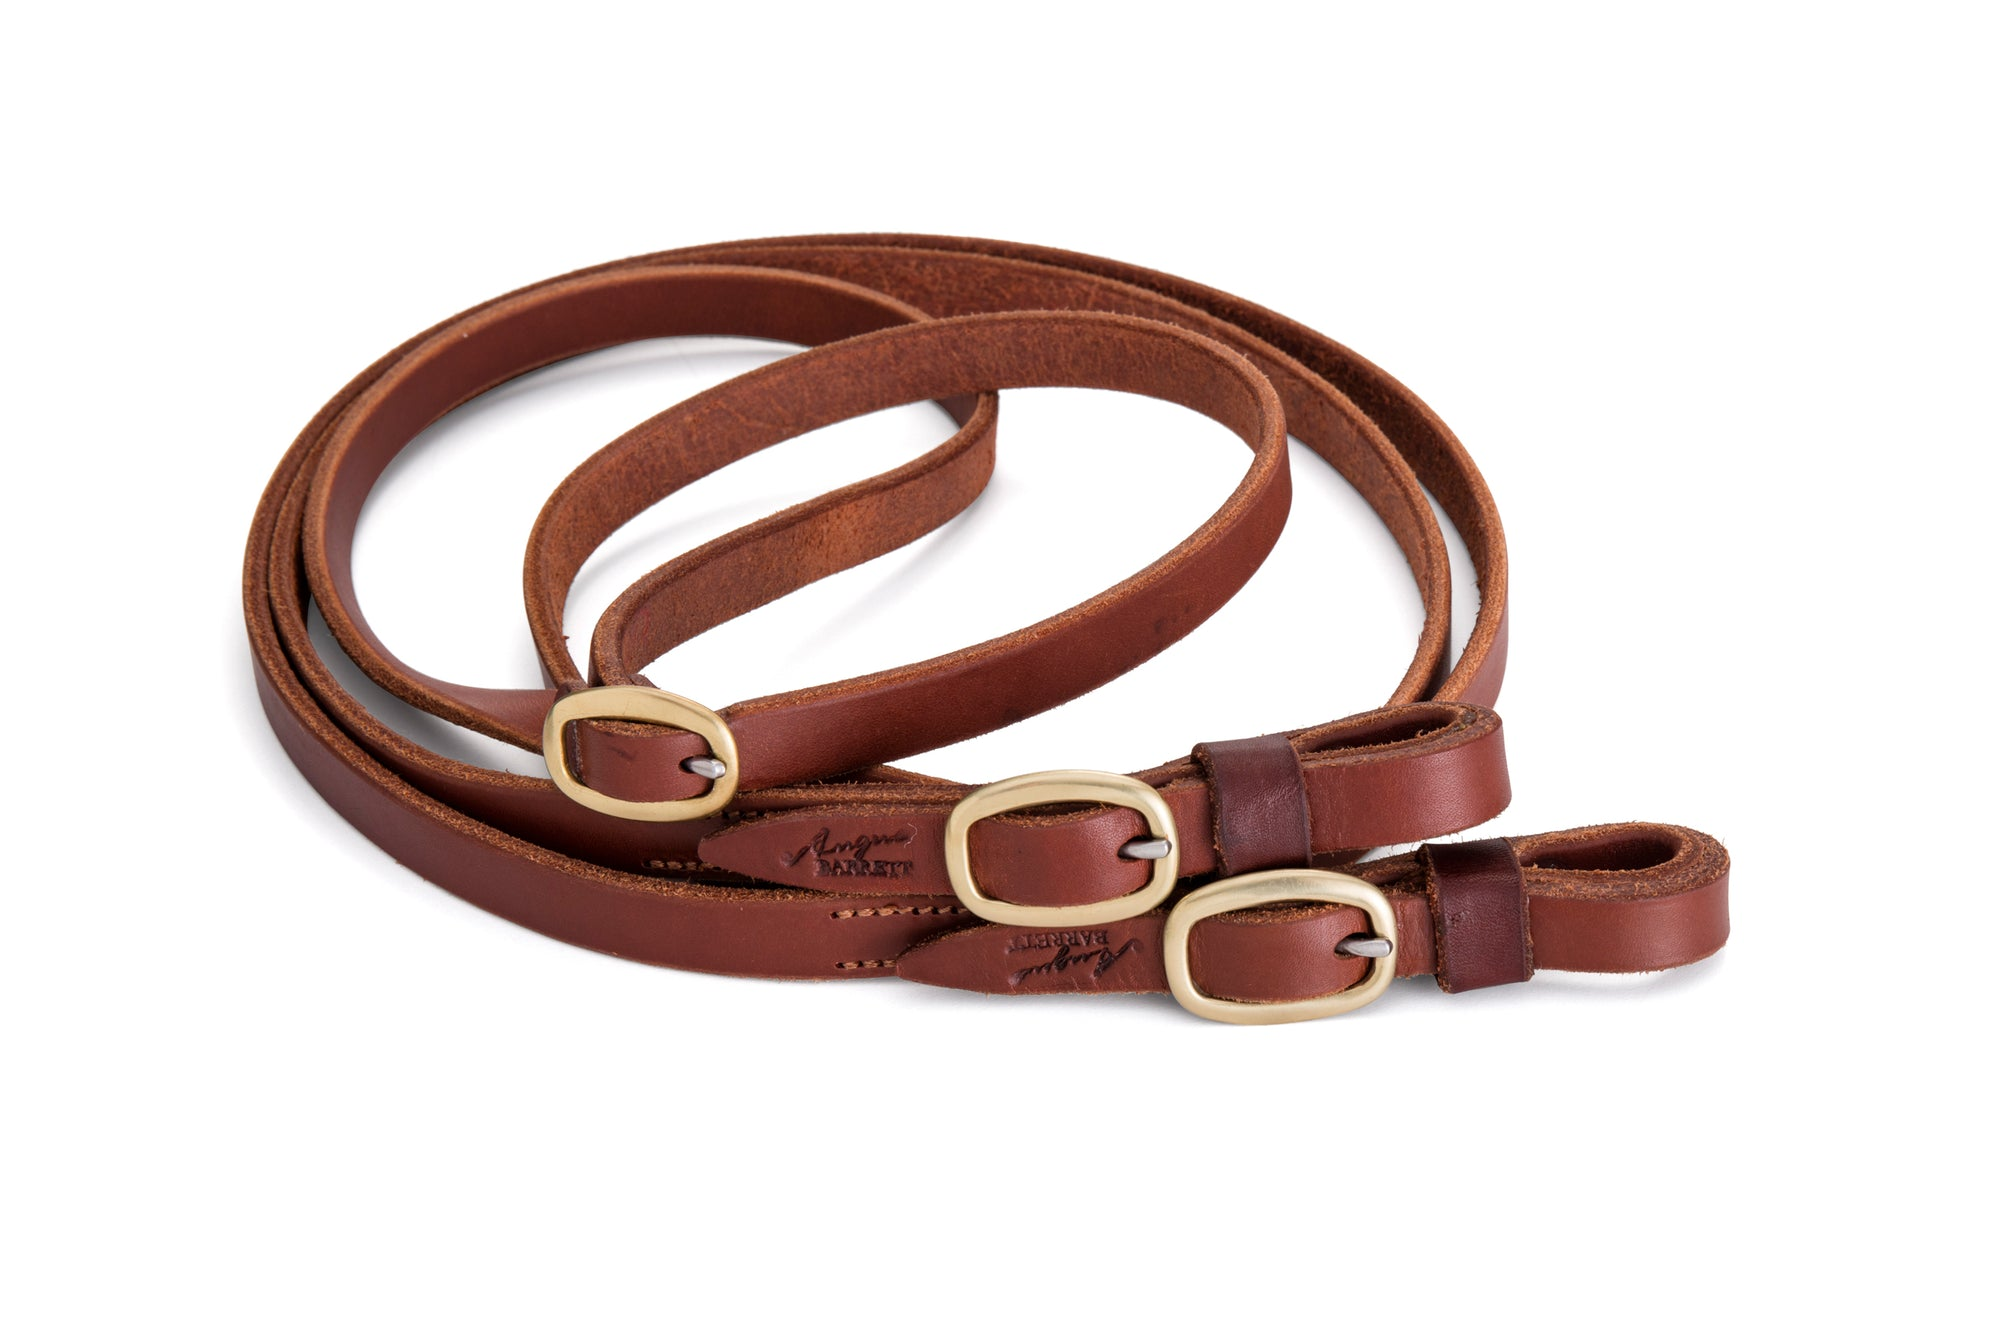 Angus Barrett Joined Reins in Natural with brass buckles